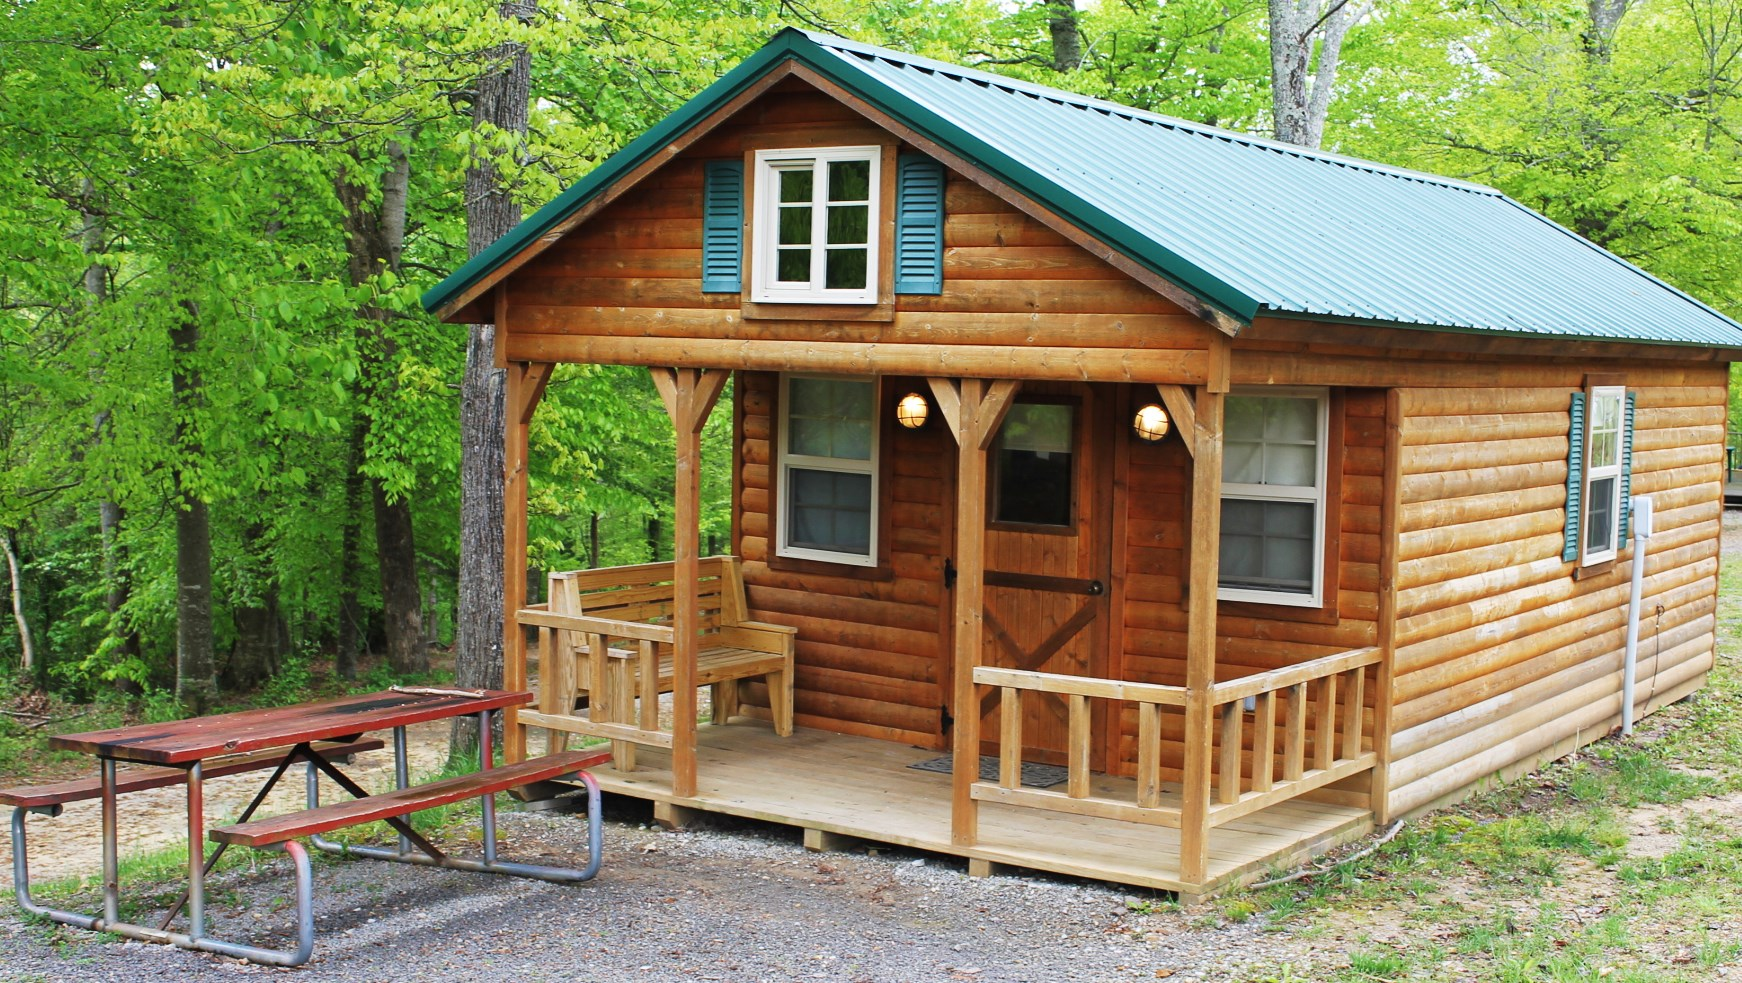 Beau Photo Of A Modern Kentucky Log Cabin. Kentucky Log Cabin Rental On Lake  Cumberland With